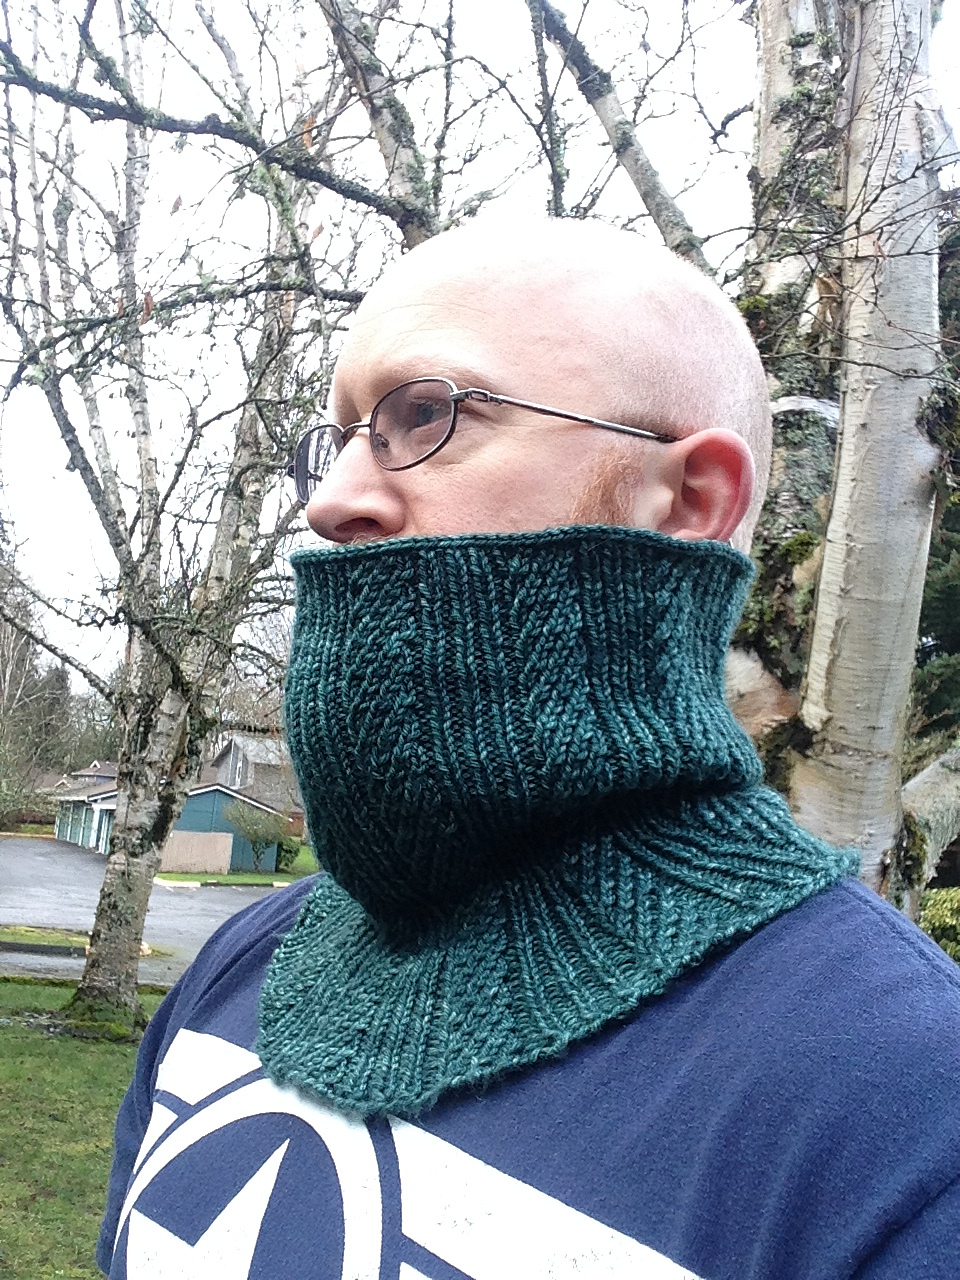 Knit and purl cowl pattern using worsted weight yarn on circular knitting needles.